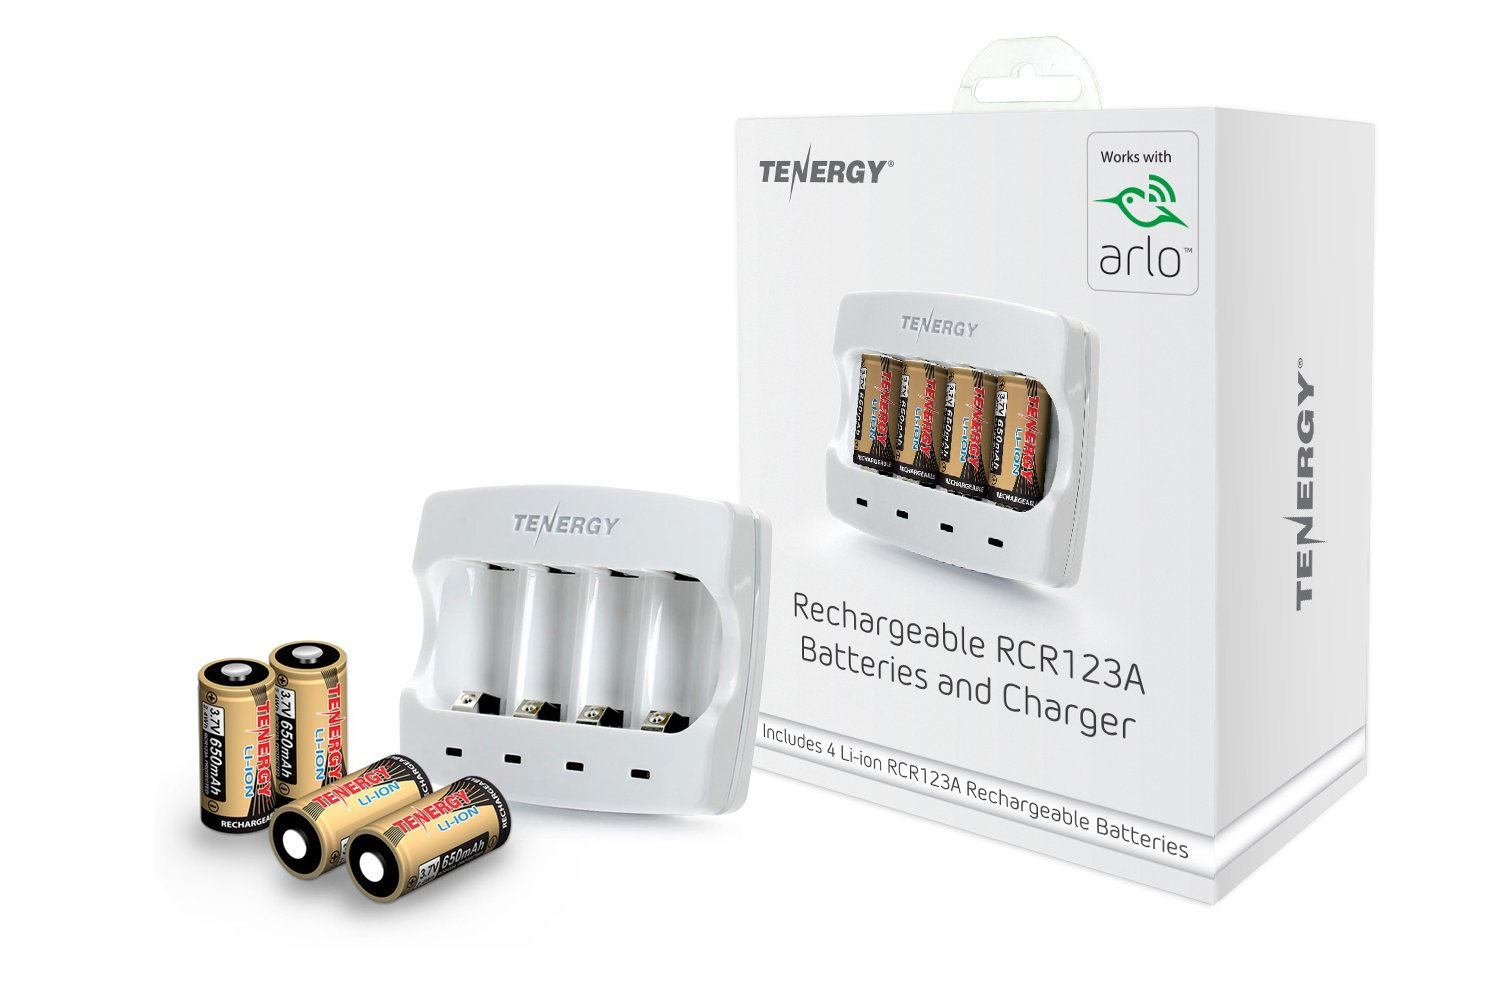 Arlo Certified: Tenergy 3.7V Arlo Battery Fast Charger and 650mAh RCR123A Li-ion Rechargeable Batteries for Arlo Wireless Security Cameras (VMC3030/3200/3330/3430/3530), UL UN Certified, 4-Pack